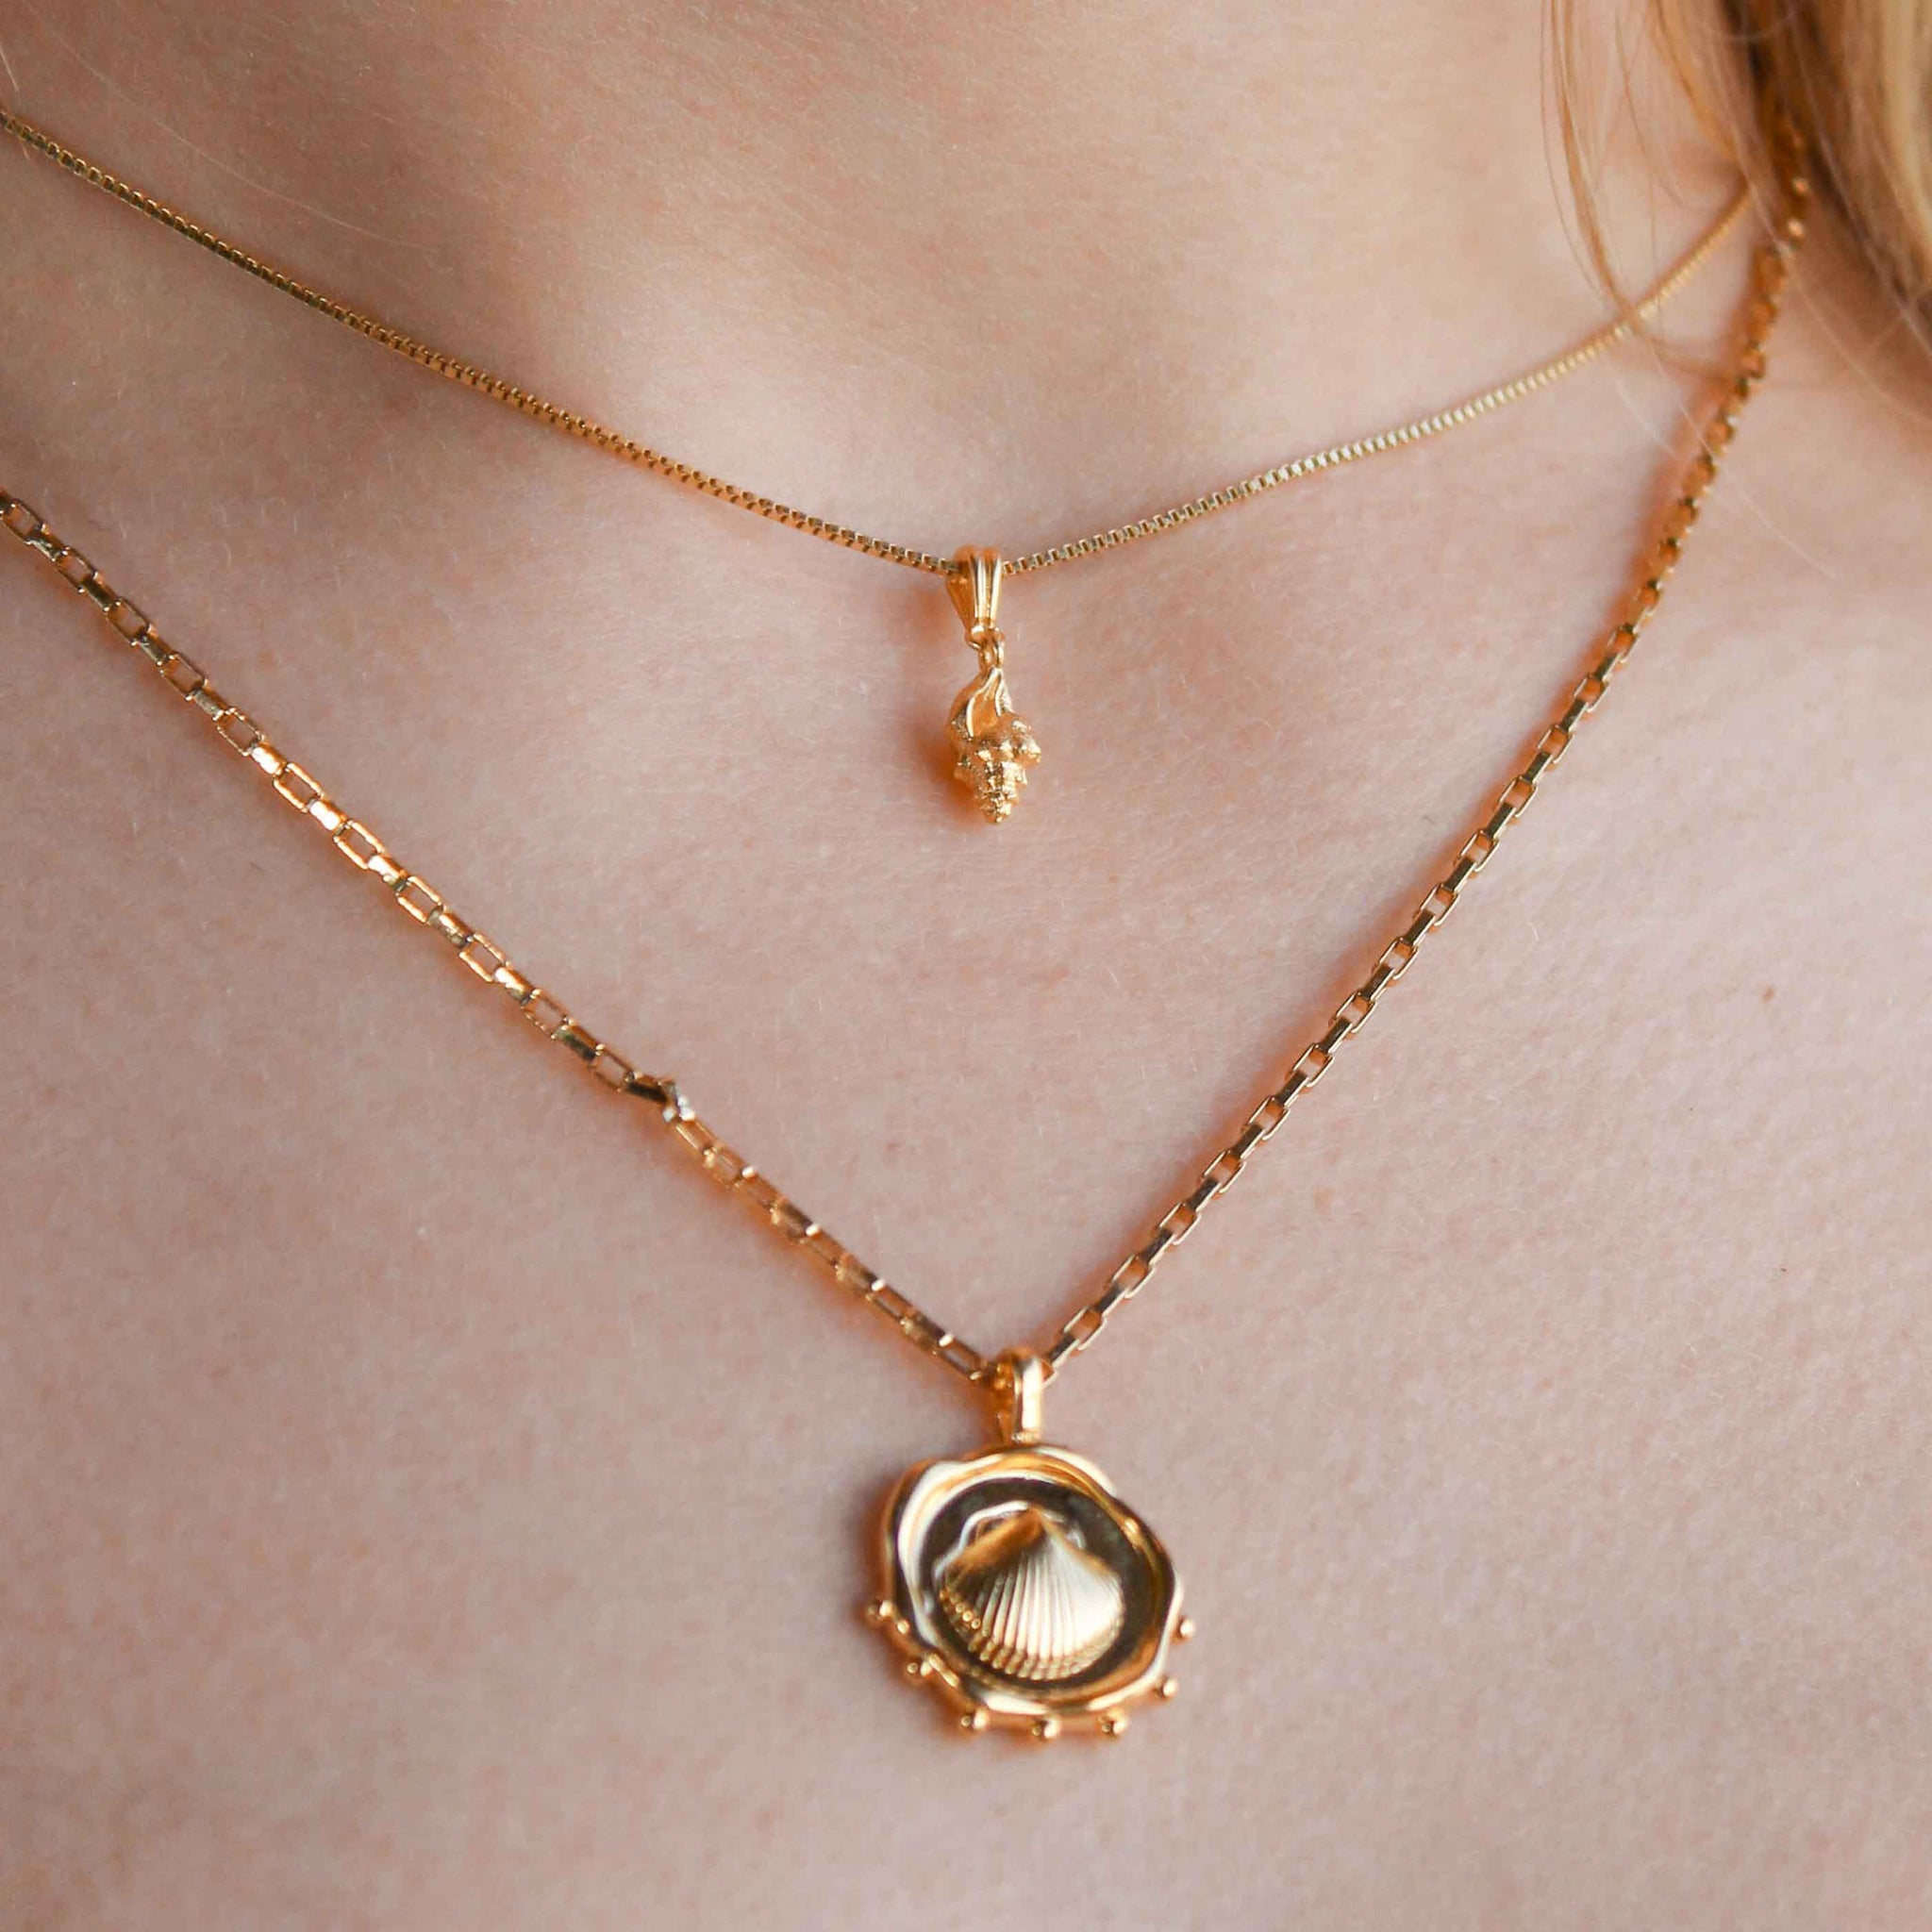 Whelk Shell Necklace Charm in Gold worn on fine chain